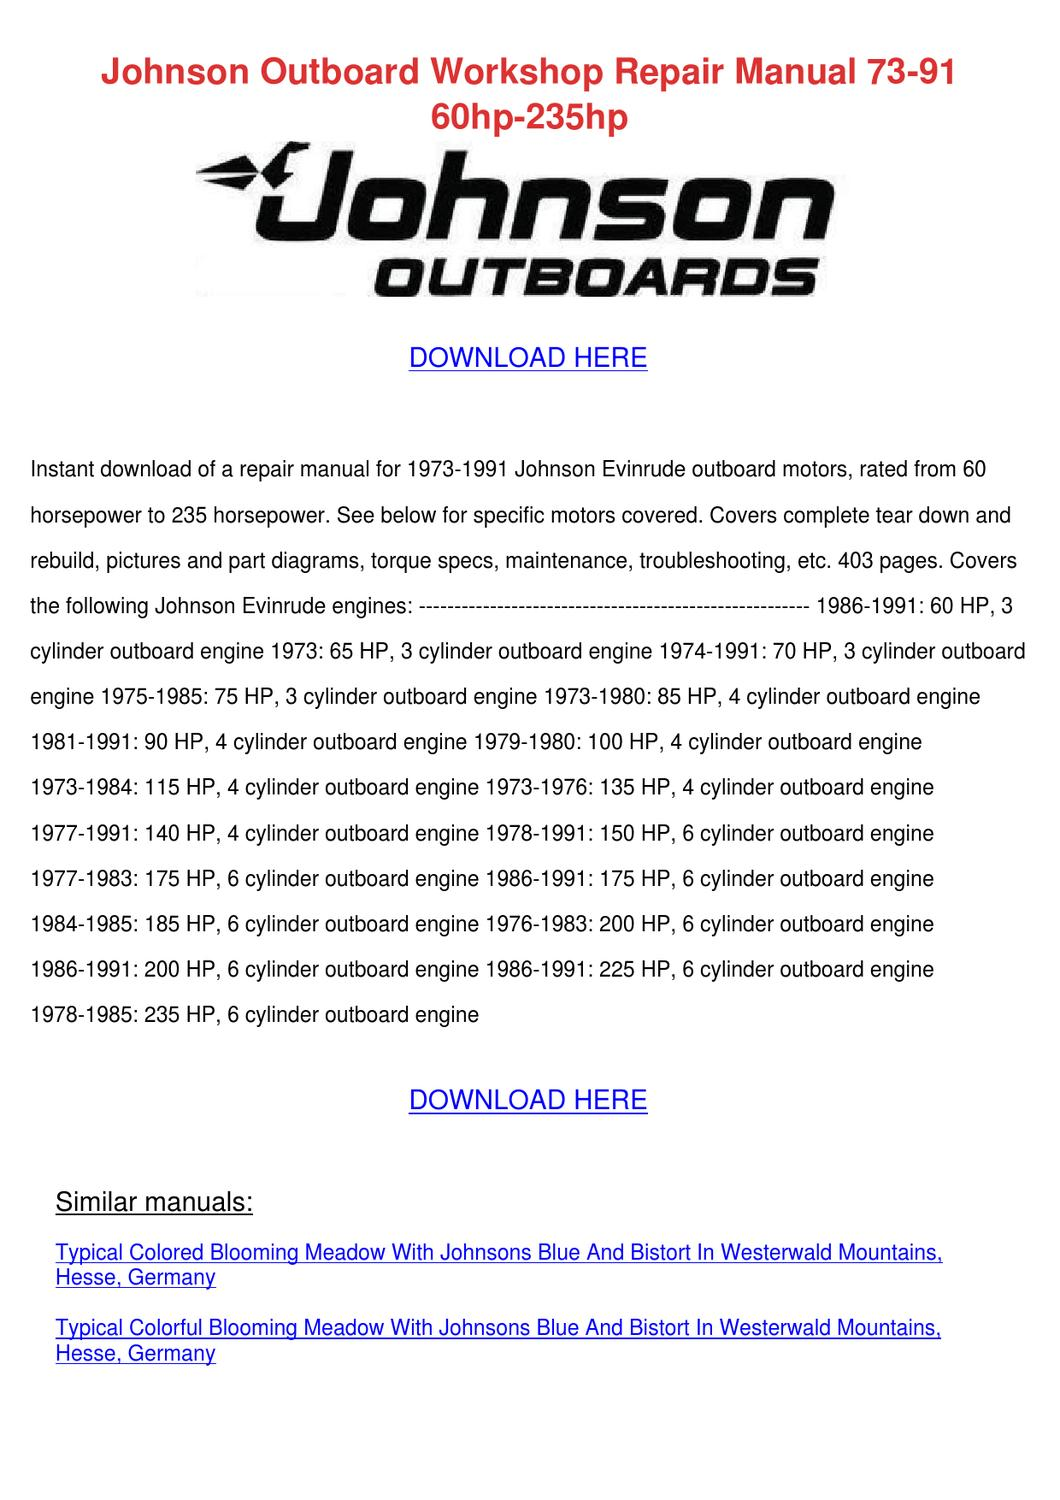 hight resolution of johnson outboard workshop repair manual 73 91 by beckyweatherford issuu